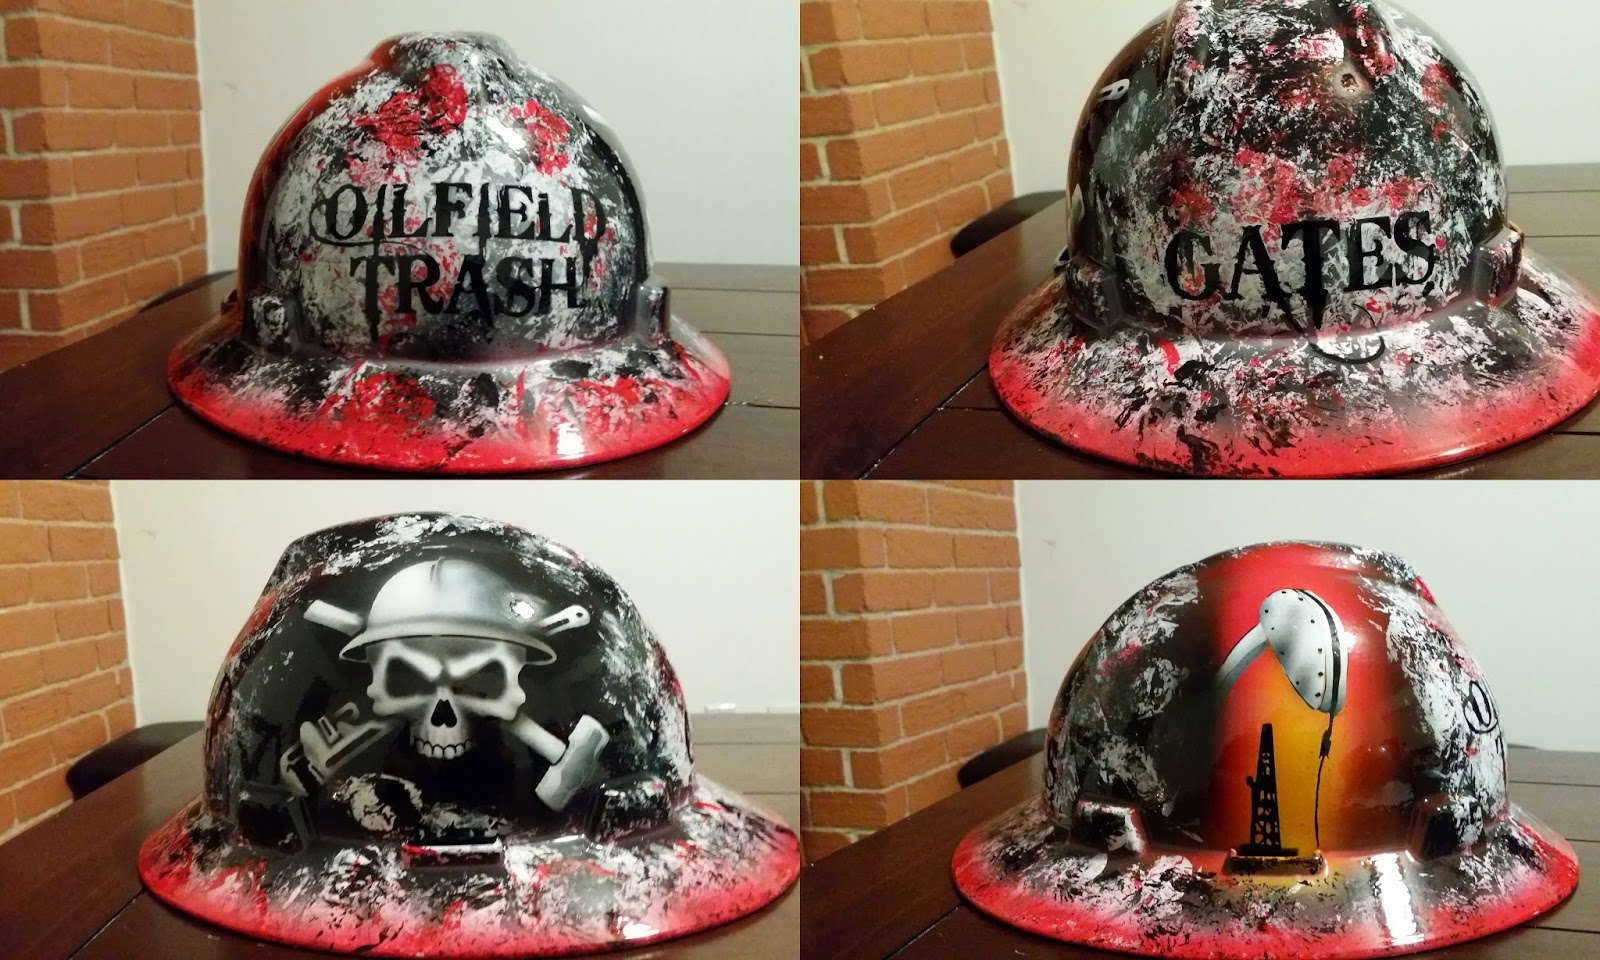 Detailed Oilfield Trash with badass skull and crossbones form sledge and pipe wrench